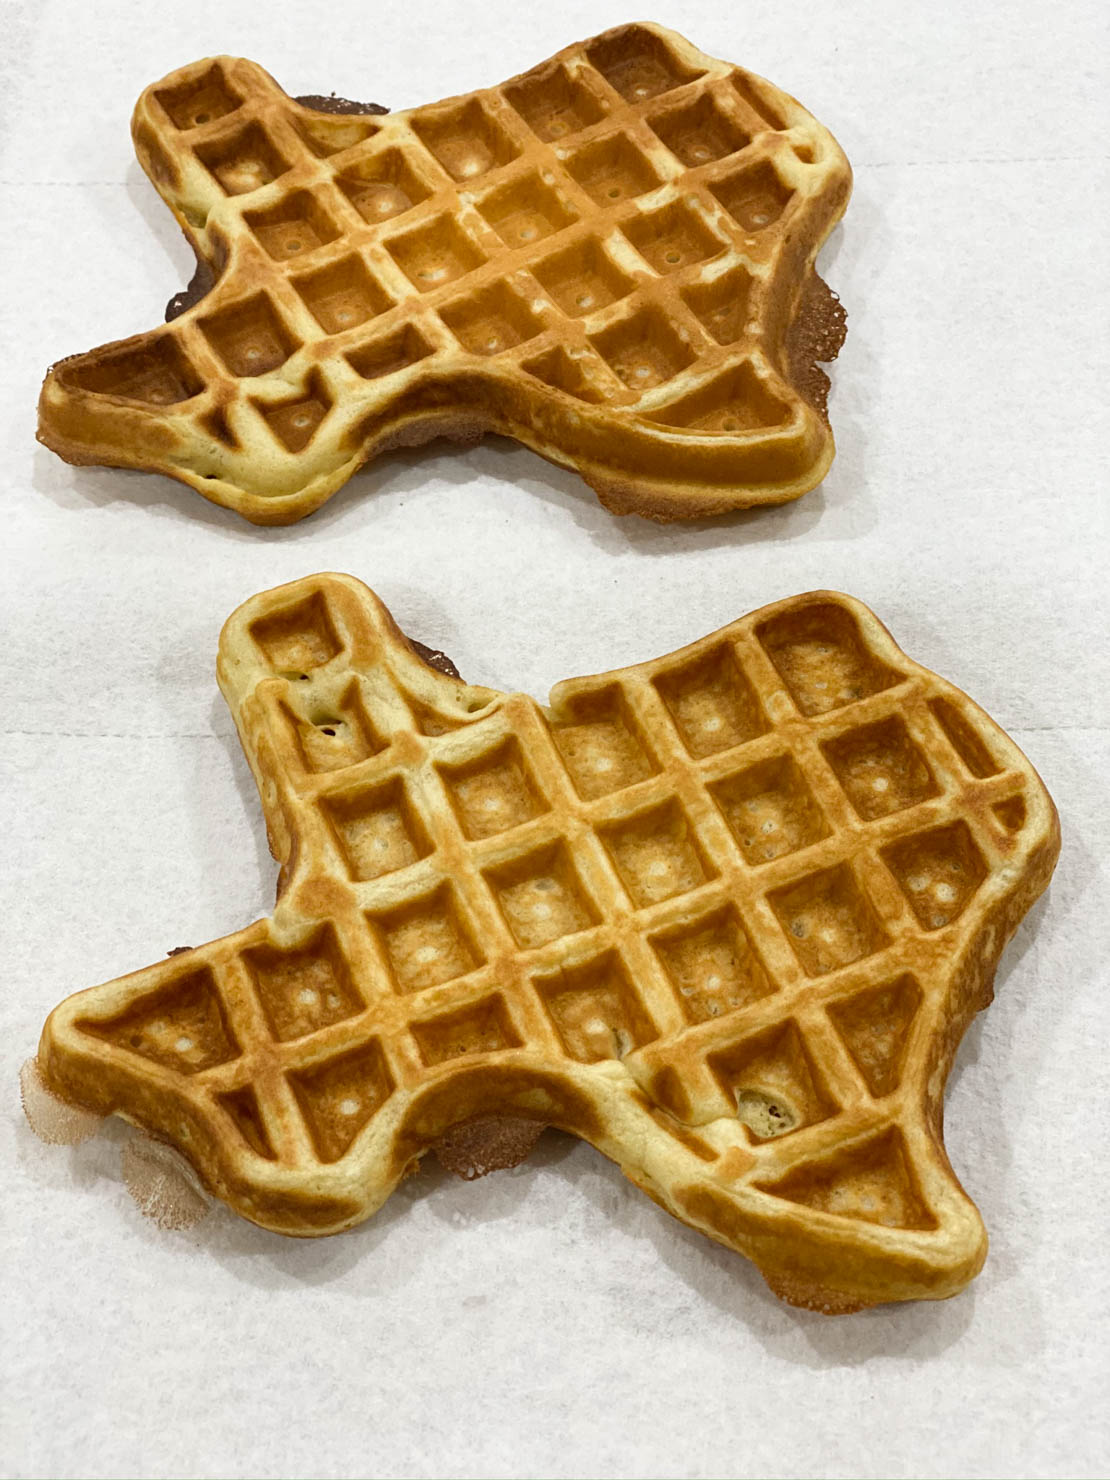 Churro Waffles - Texas style, completed and waiting to be fried